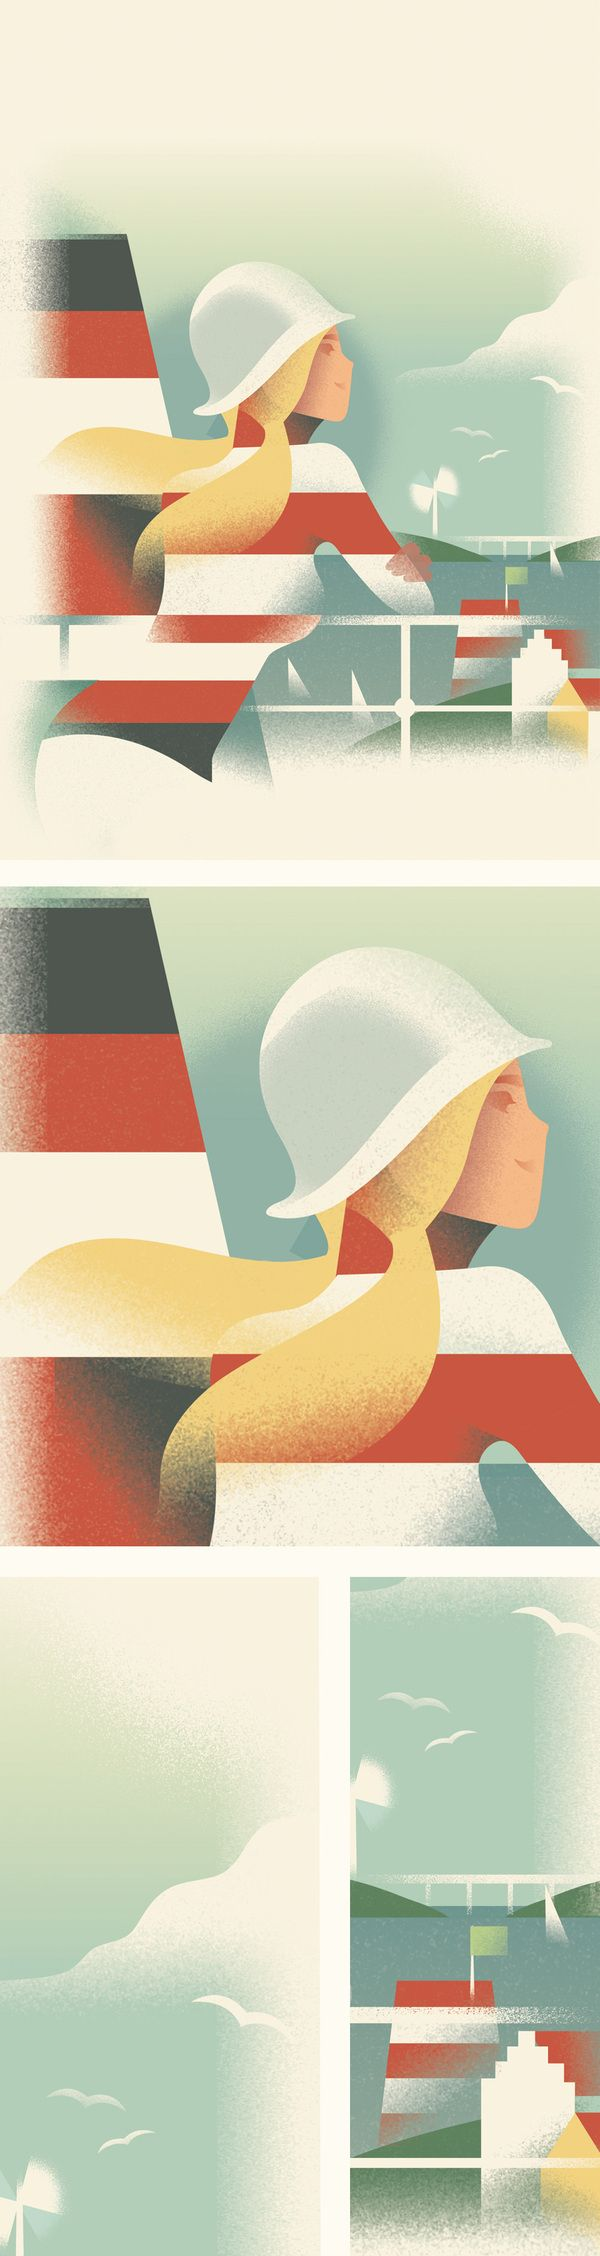 Monocle survey cover in Art Deco Posters by Mads Berg